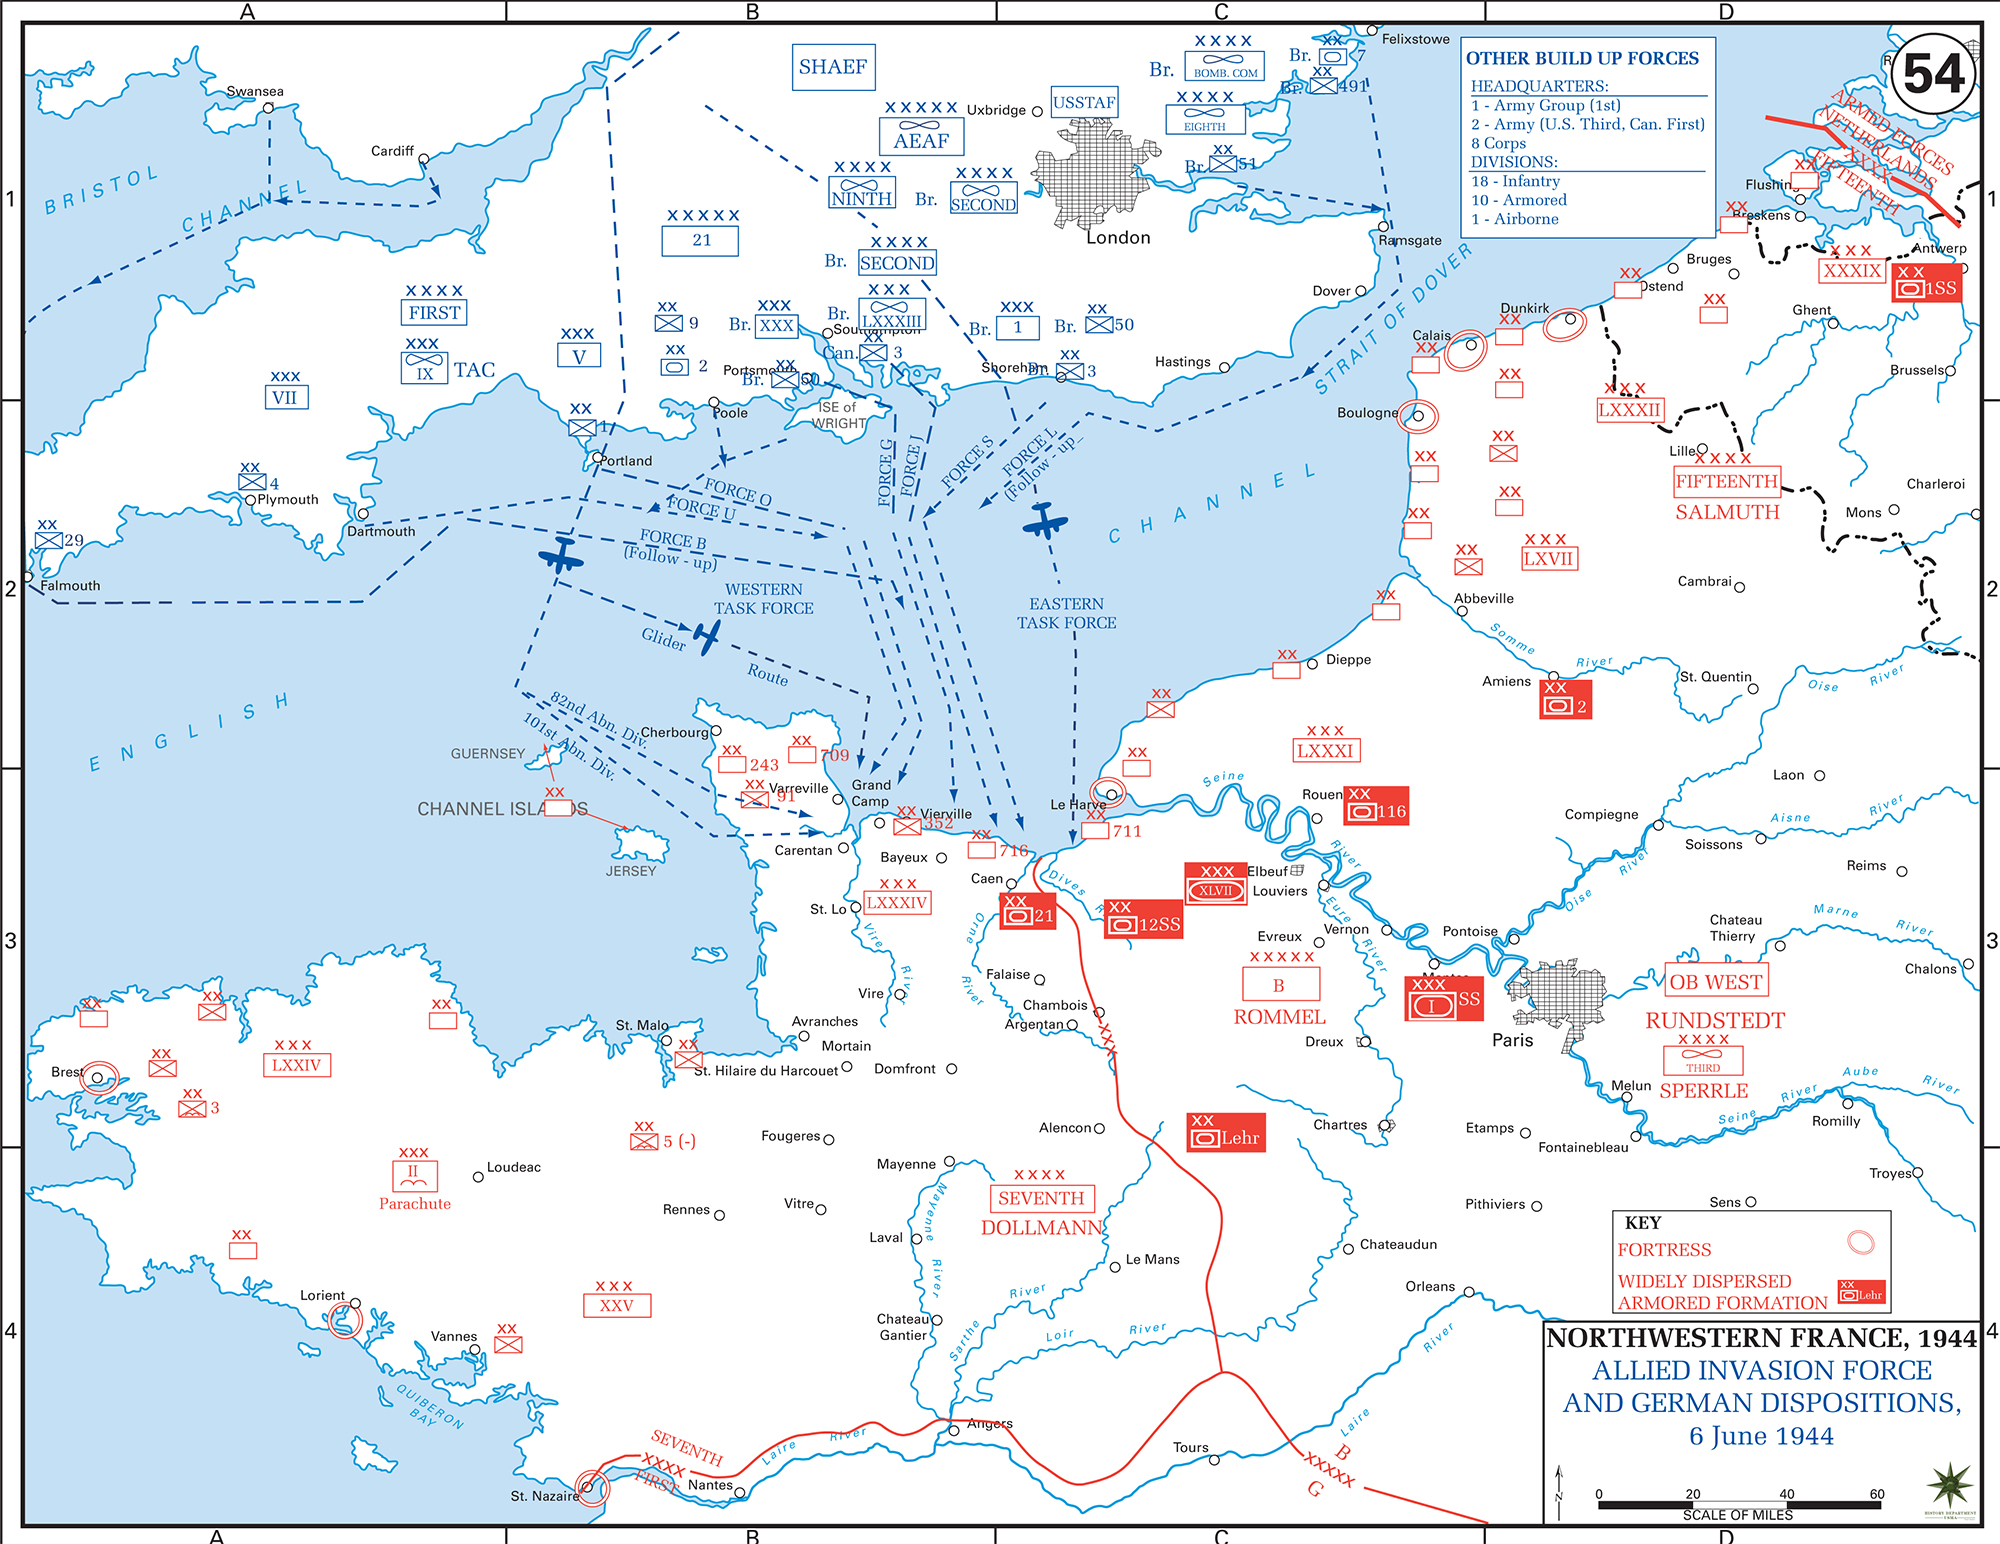 Map of Northwestern France June 6, 1944